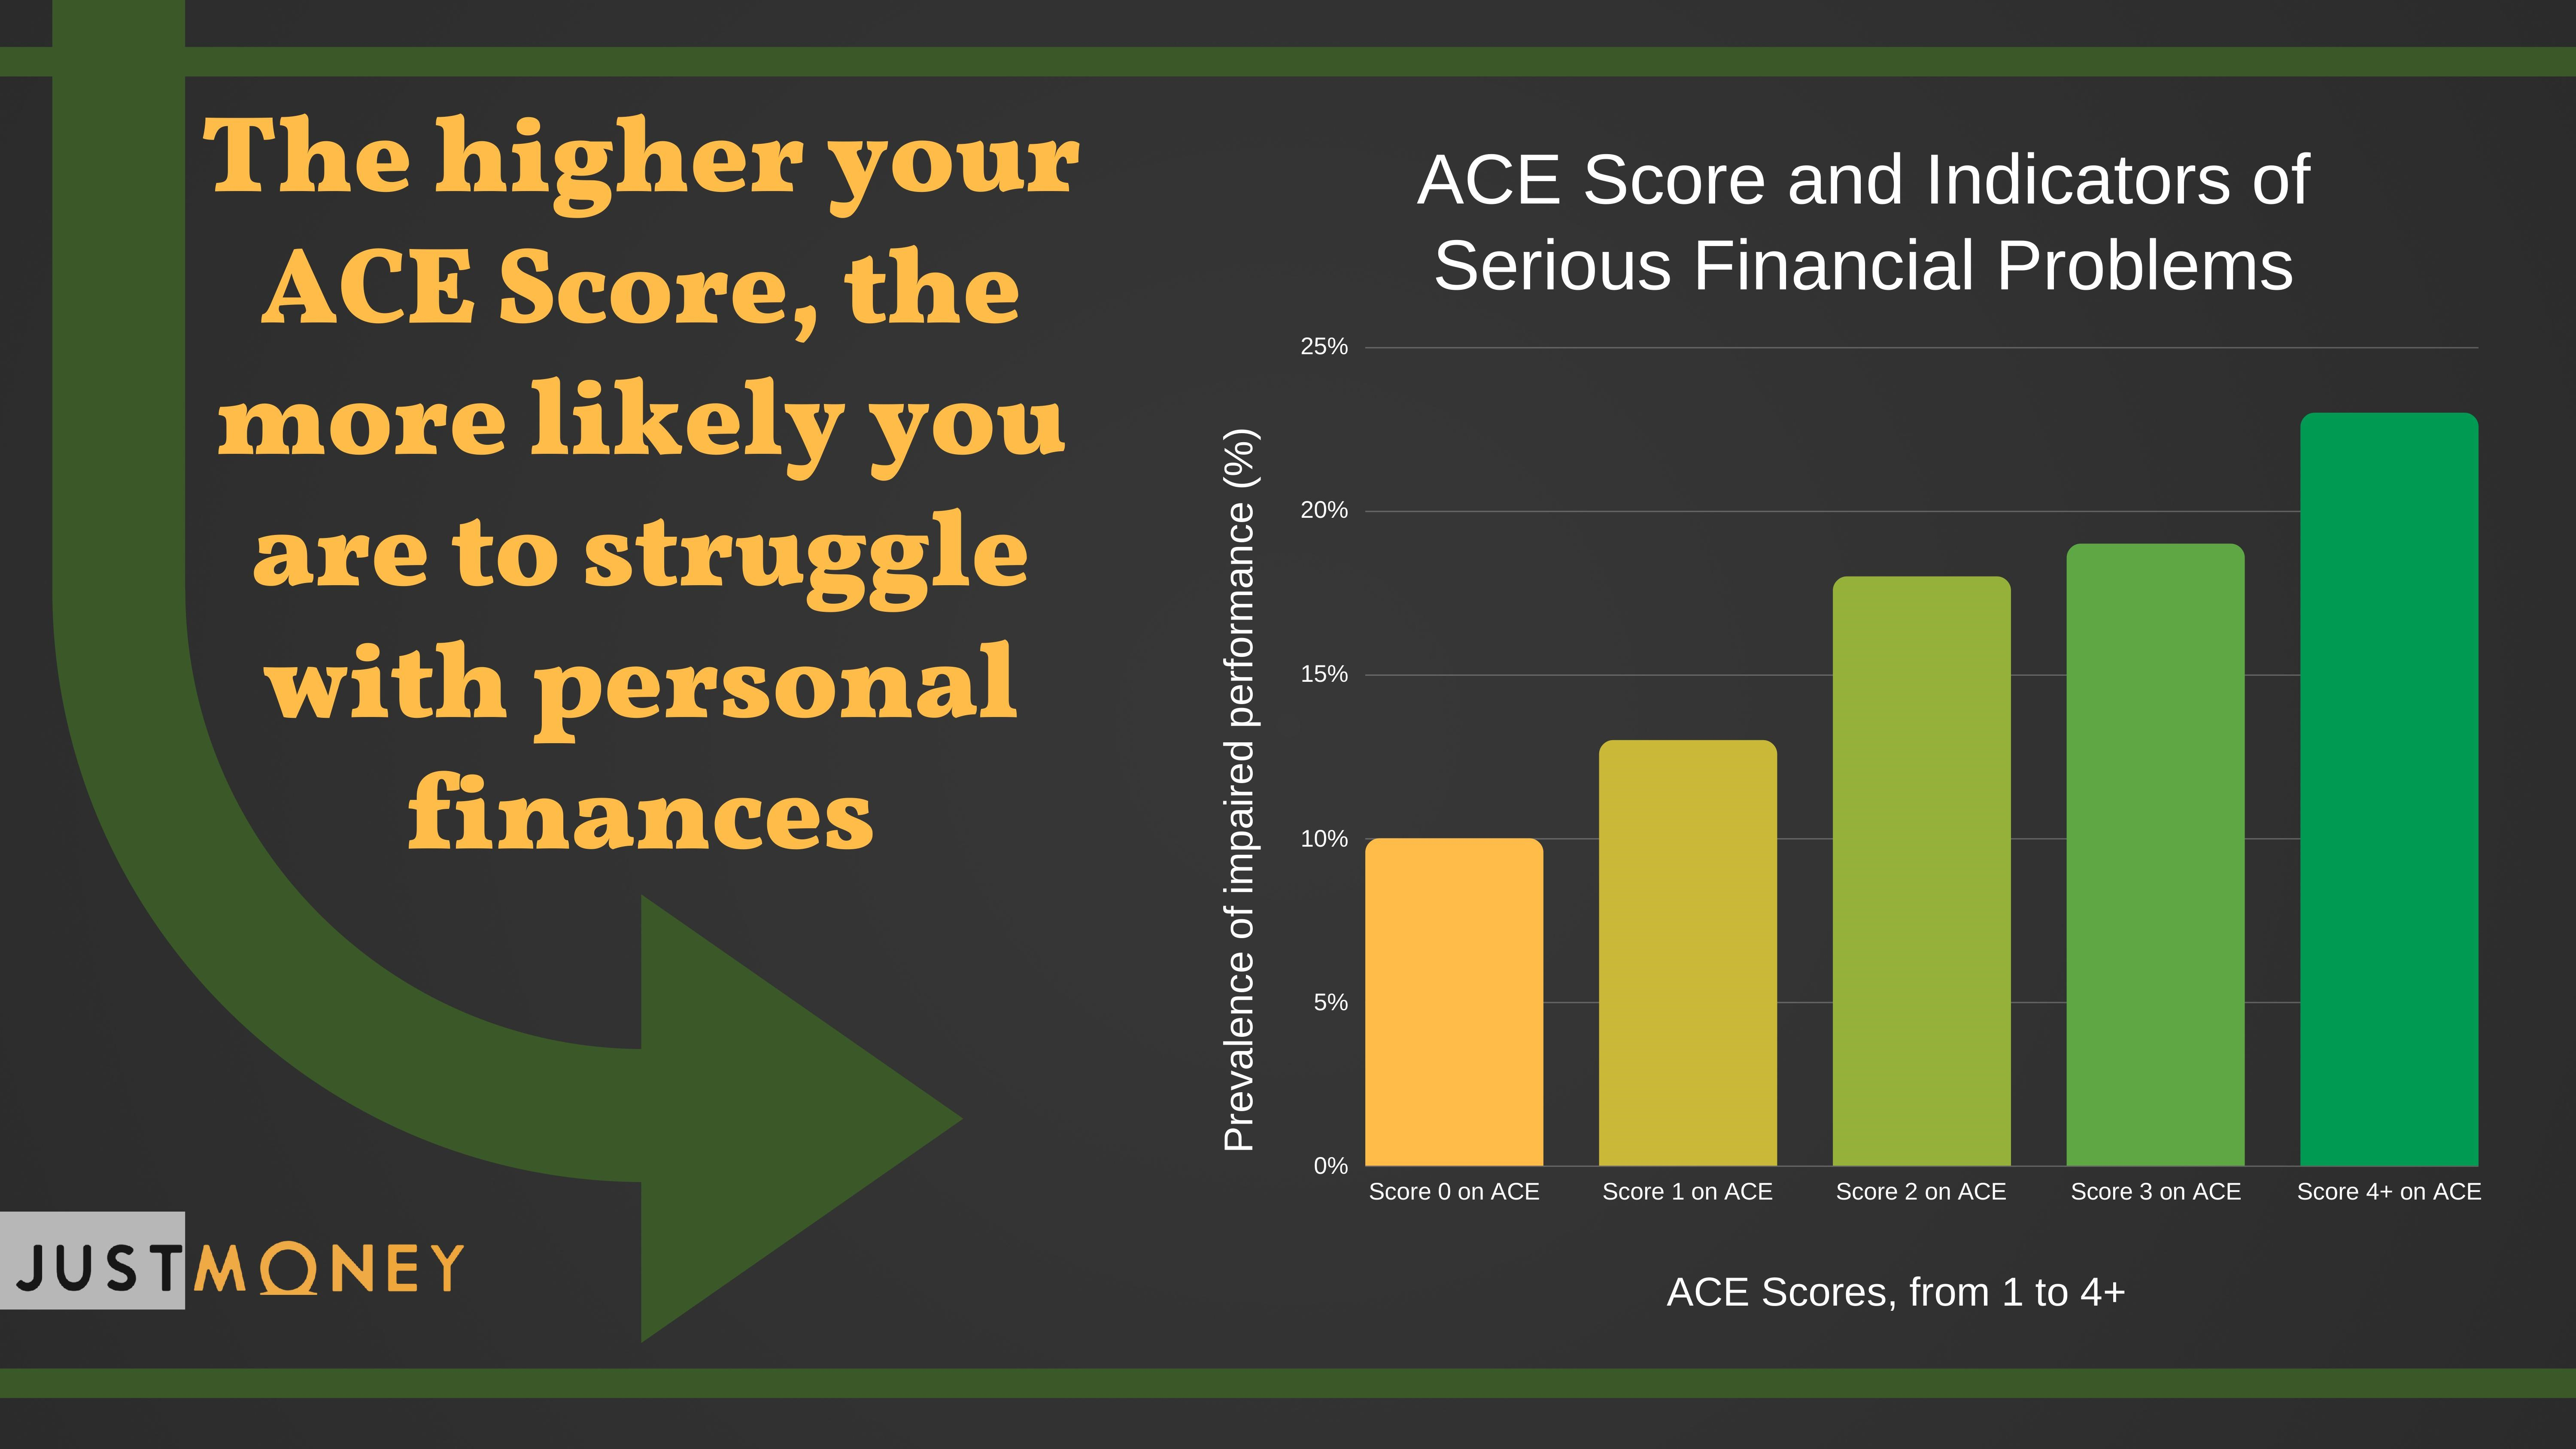 ACE Score and Indicators of Serious Financial Problems